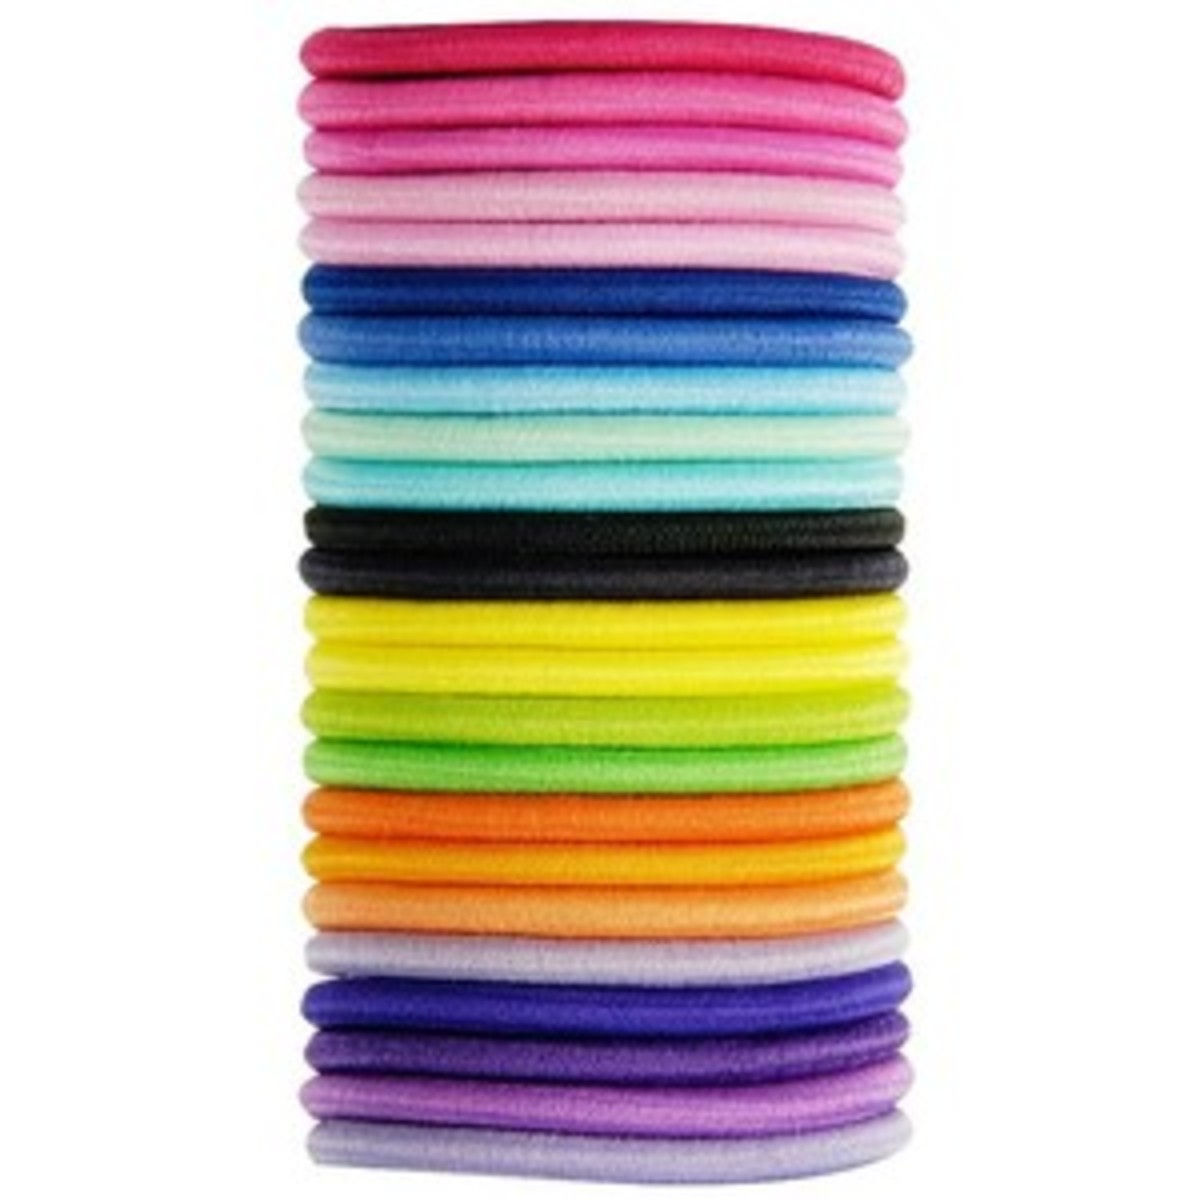 Hair elastics, I'm not sure why, but cats are notoriously attracted to these things!